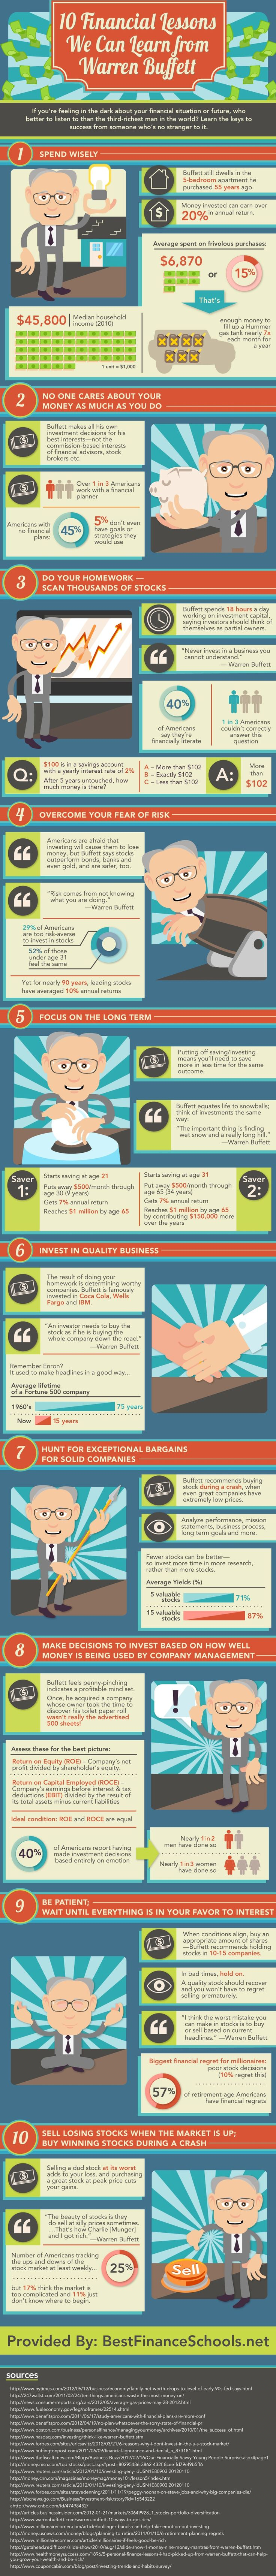 "Cute! I do like the ""Oracle of Omaha."" However, you have to take care of the present with your budget to build your future with investments. ... Infographic - ""10 Financial Lessons We Can Learn from Warren Buffet"" - via Business Insider https://www.thefinancialengineer.net/"